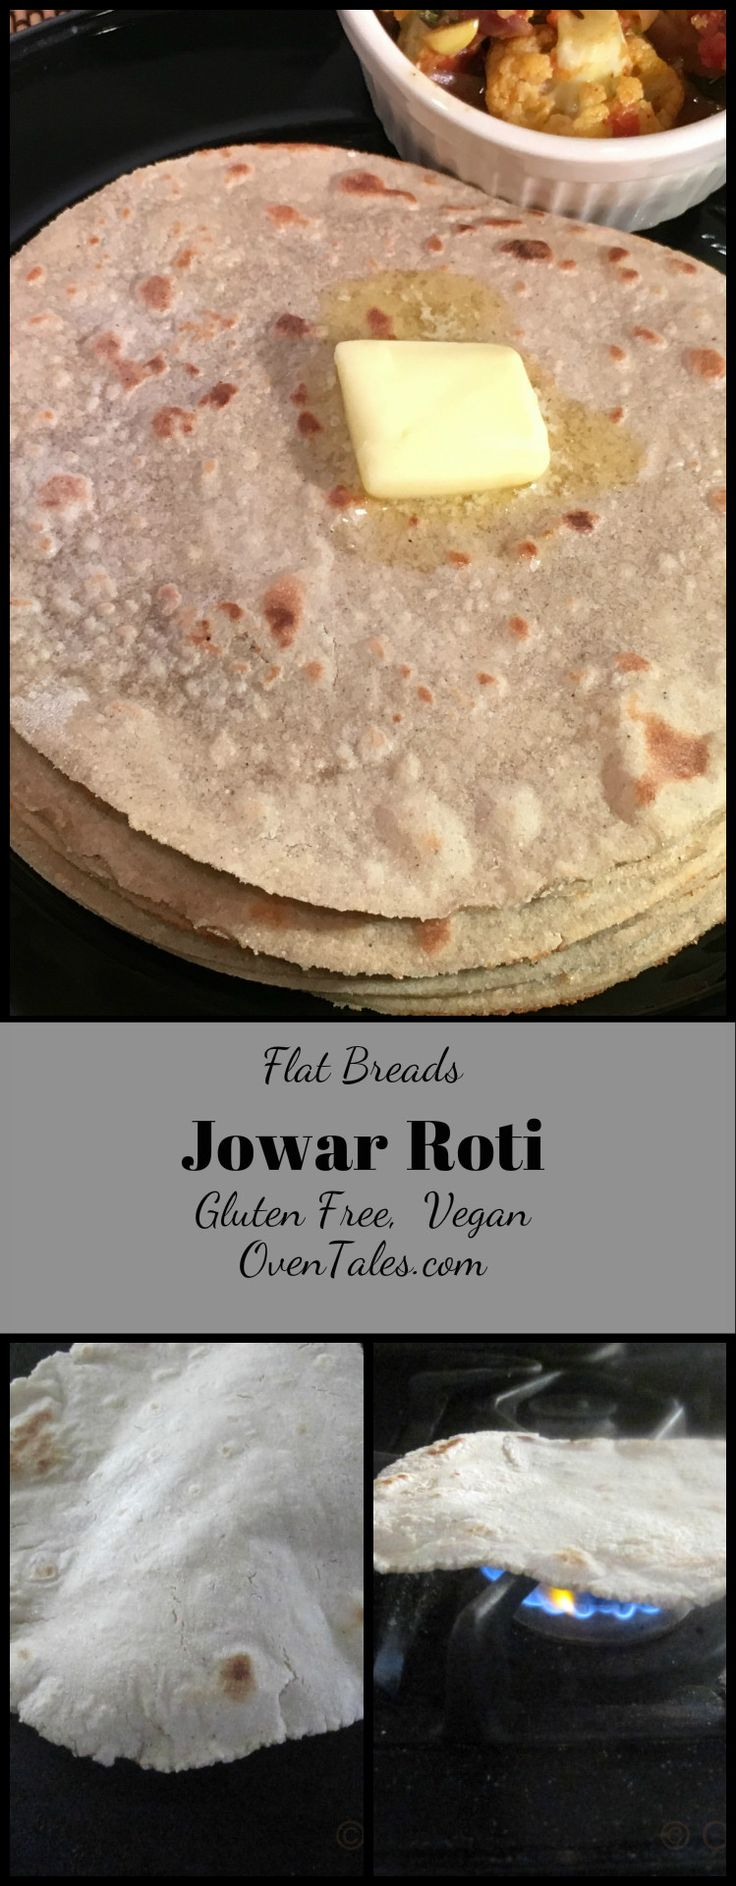 "Jowar Roti - Jowar or Sorghum is  an ancient  grain that packs a  punch in  terms of nutritional  values.  Flat bread made  with jowar is soft, delicious and  packs a  punch in terms of  nutritional value.  These  breads are  gluten  free  and  vegan,  but  chances  are   you  won't  even notice  the ""free"" aspect of  this  bread at  all .."